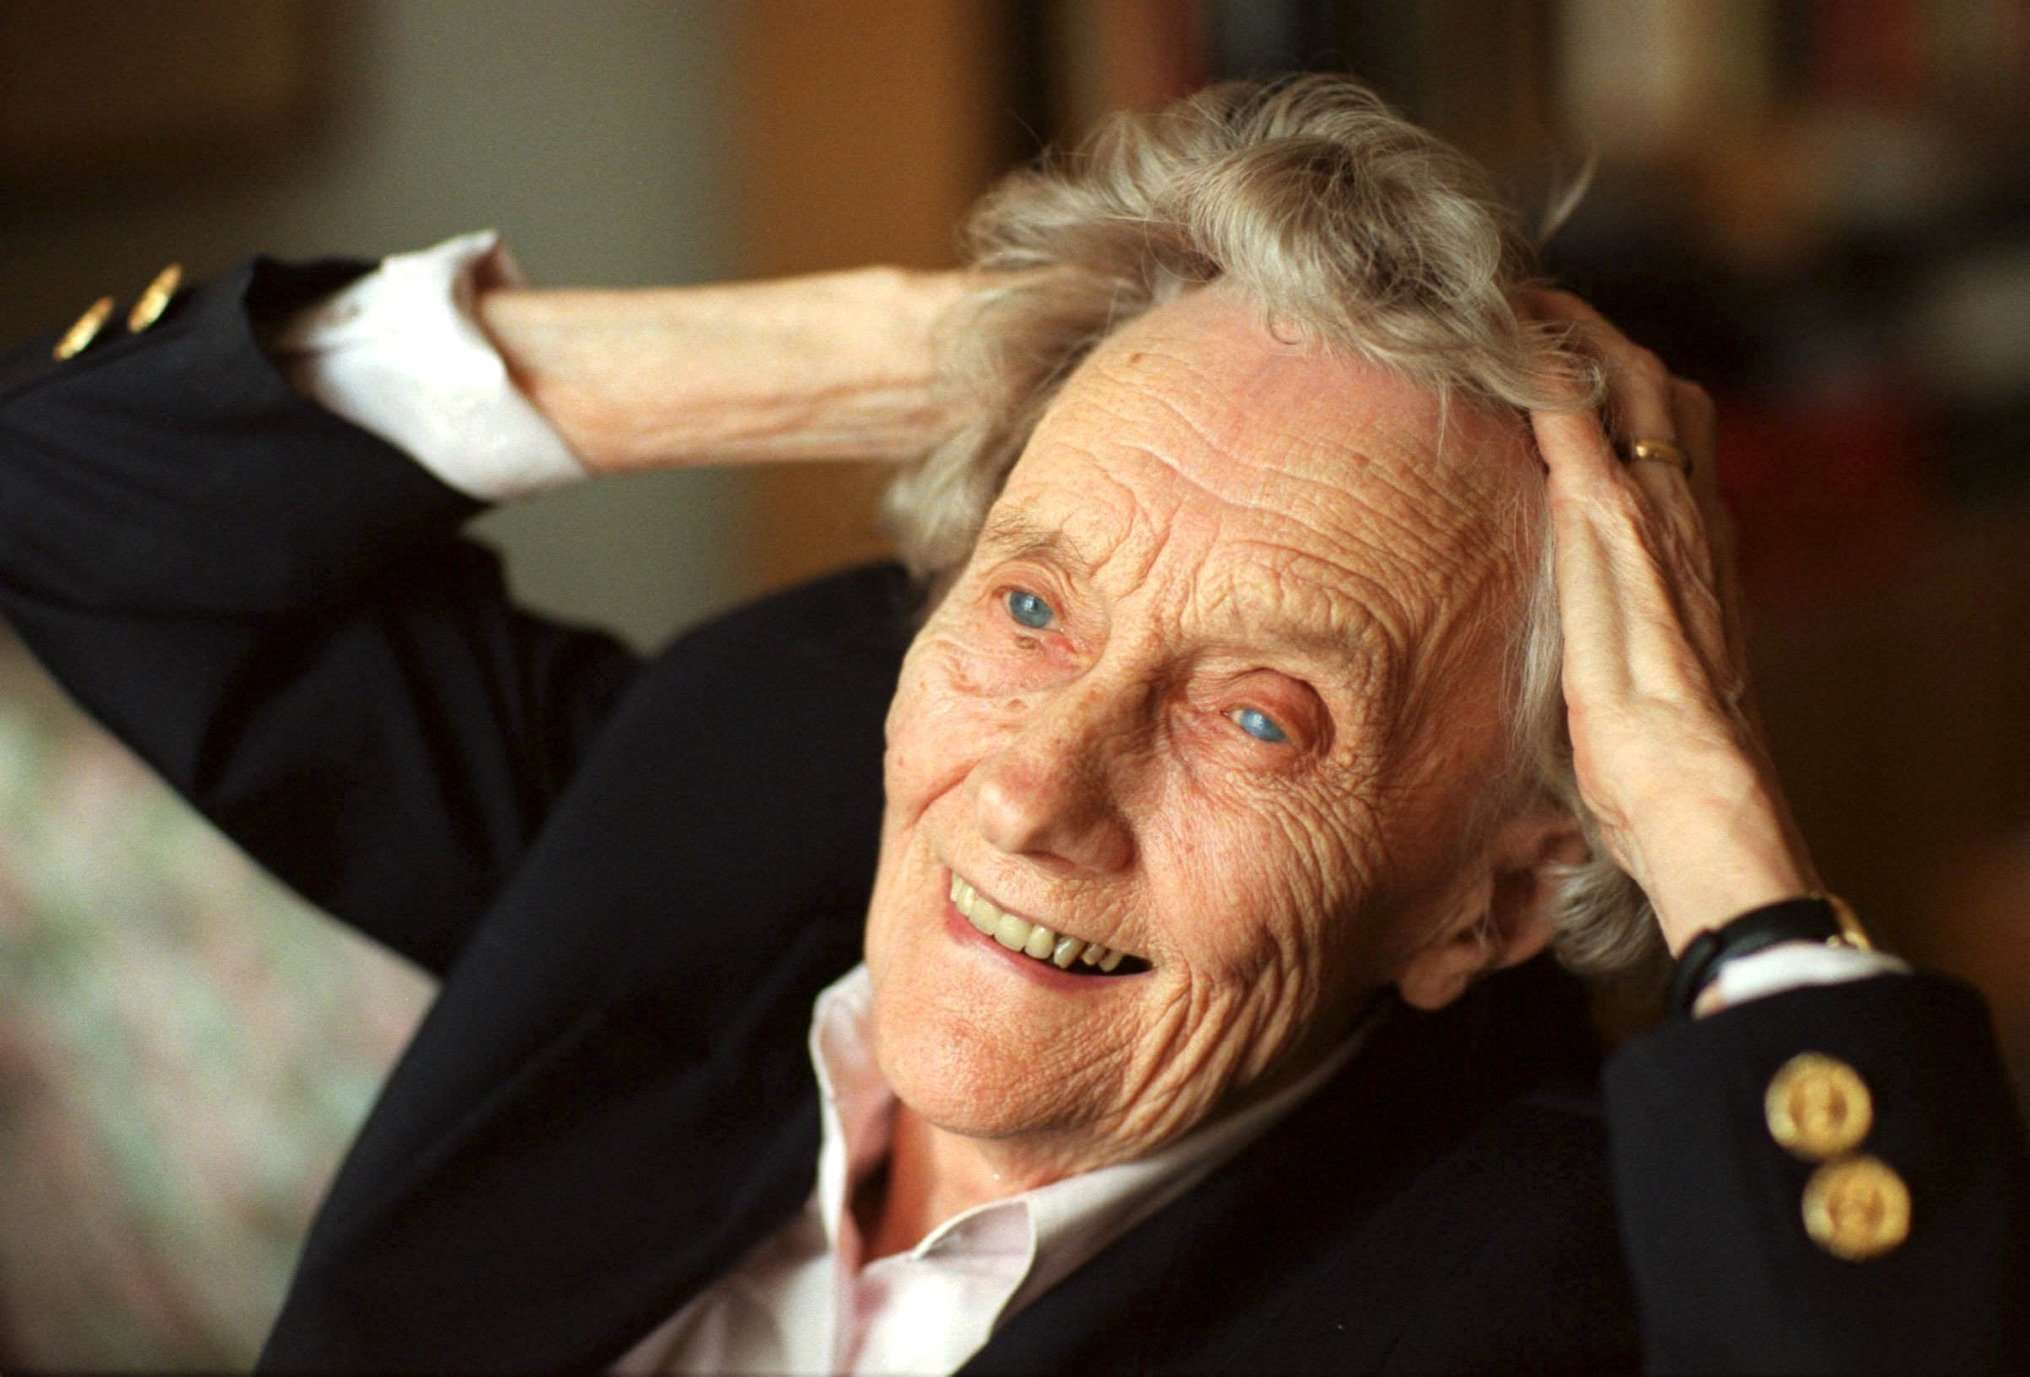 FFM07 - 20021211 - STOCKHOLM, SWEDEN : One of the world ´s famous literature figures died in her sleep on 28 January 2002 in Stockholm. The Swedish childrens book writer Astrid Lindgren was 94 years old. EPA PHOTO PRESSENS BILD / TOBIAS ROSTLUND / mr